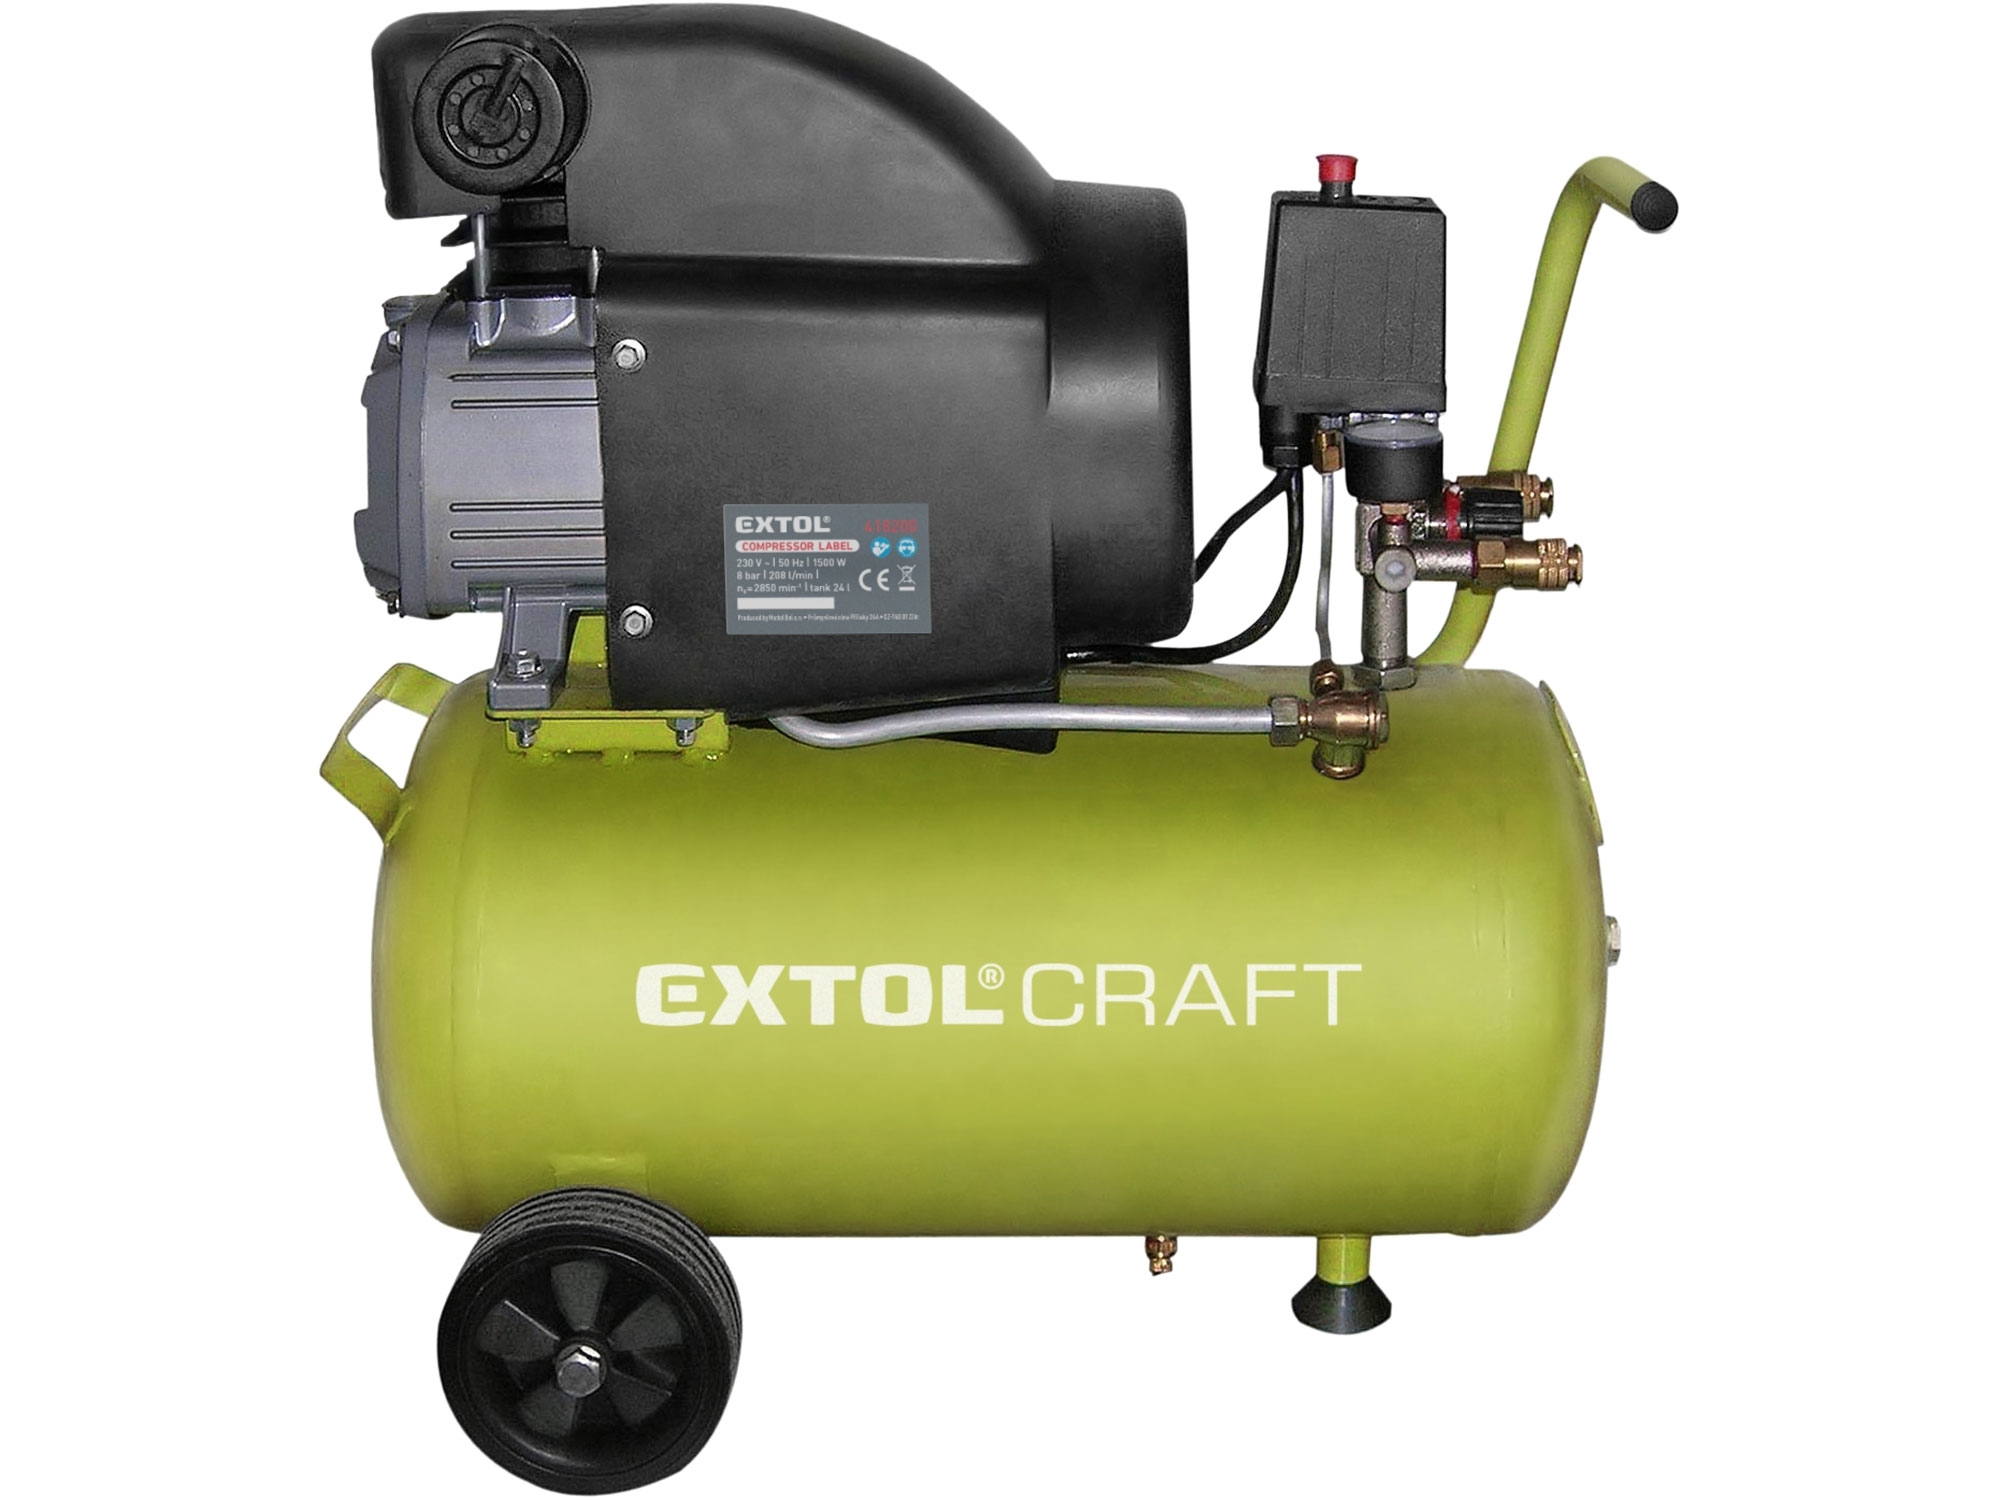 Kompresor olejový, 1500W EXTOL CRAFT 418200